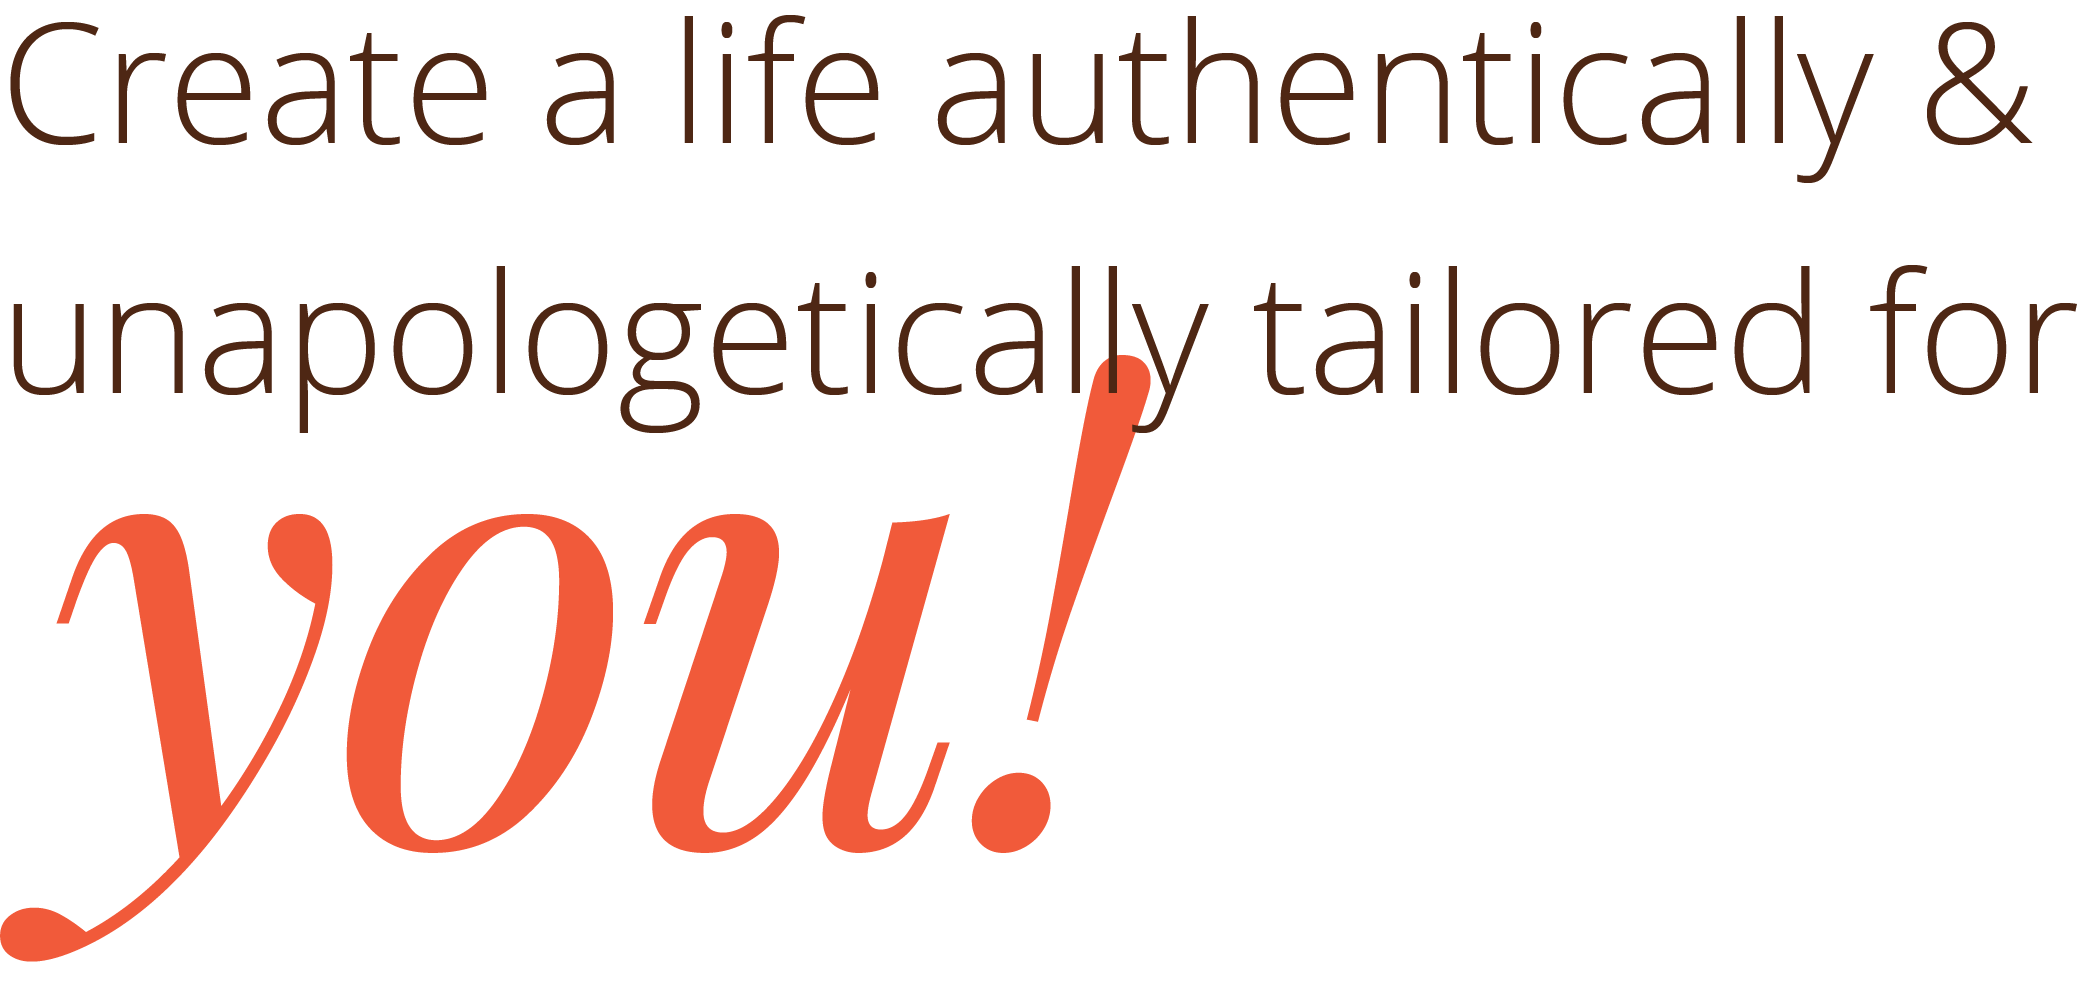 Create a life authentically and unapologetically tailored for you